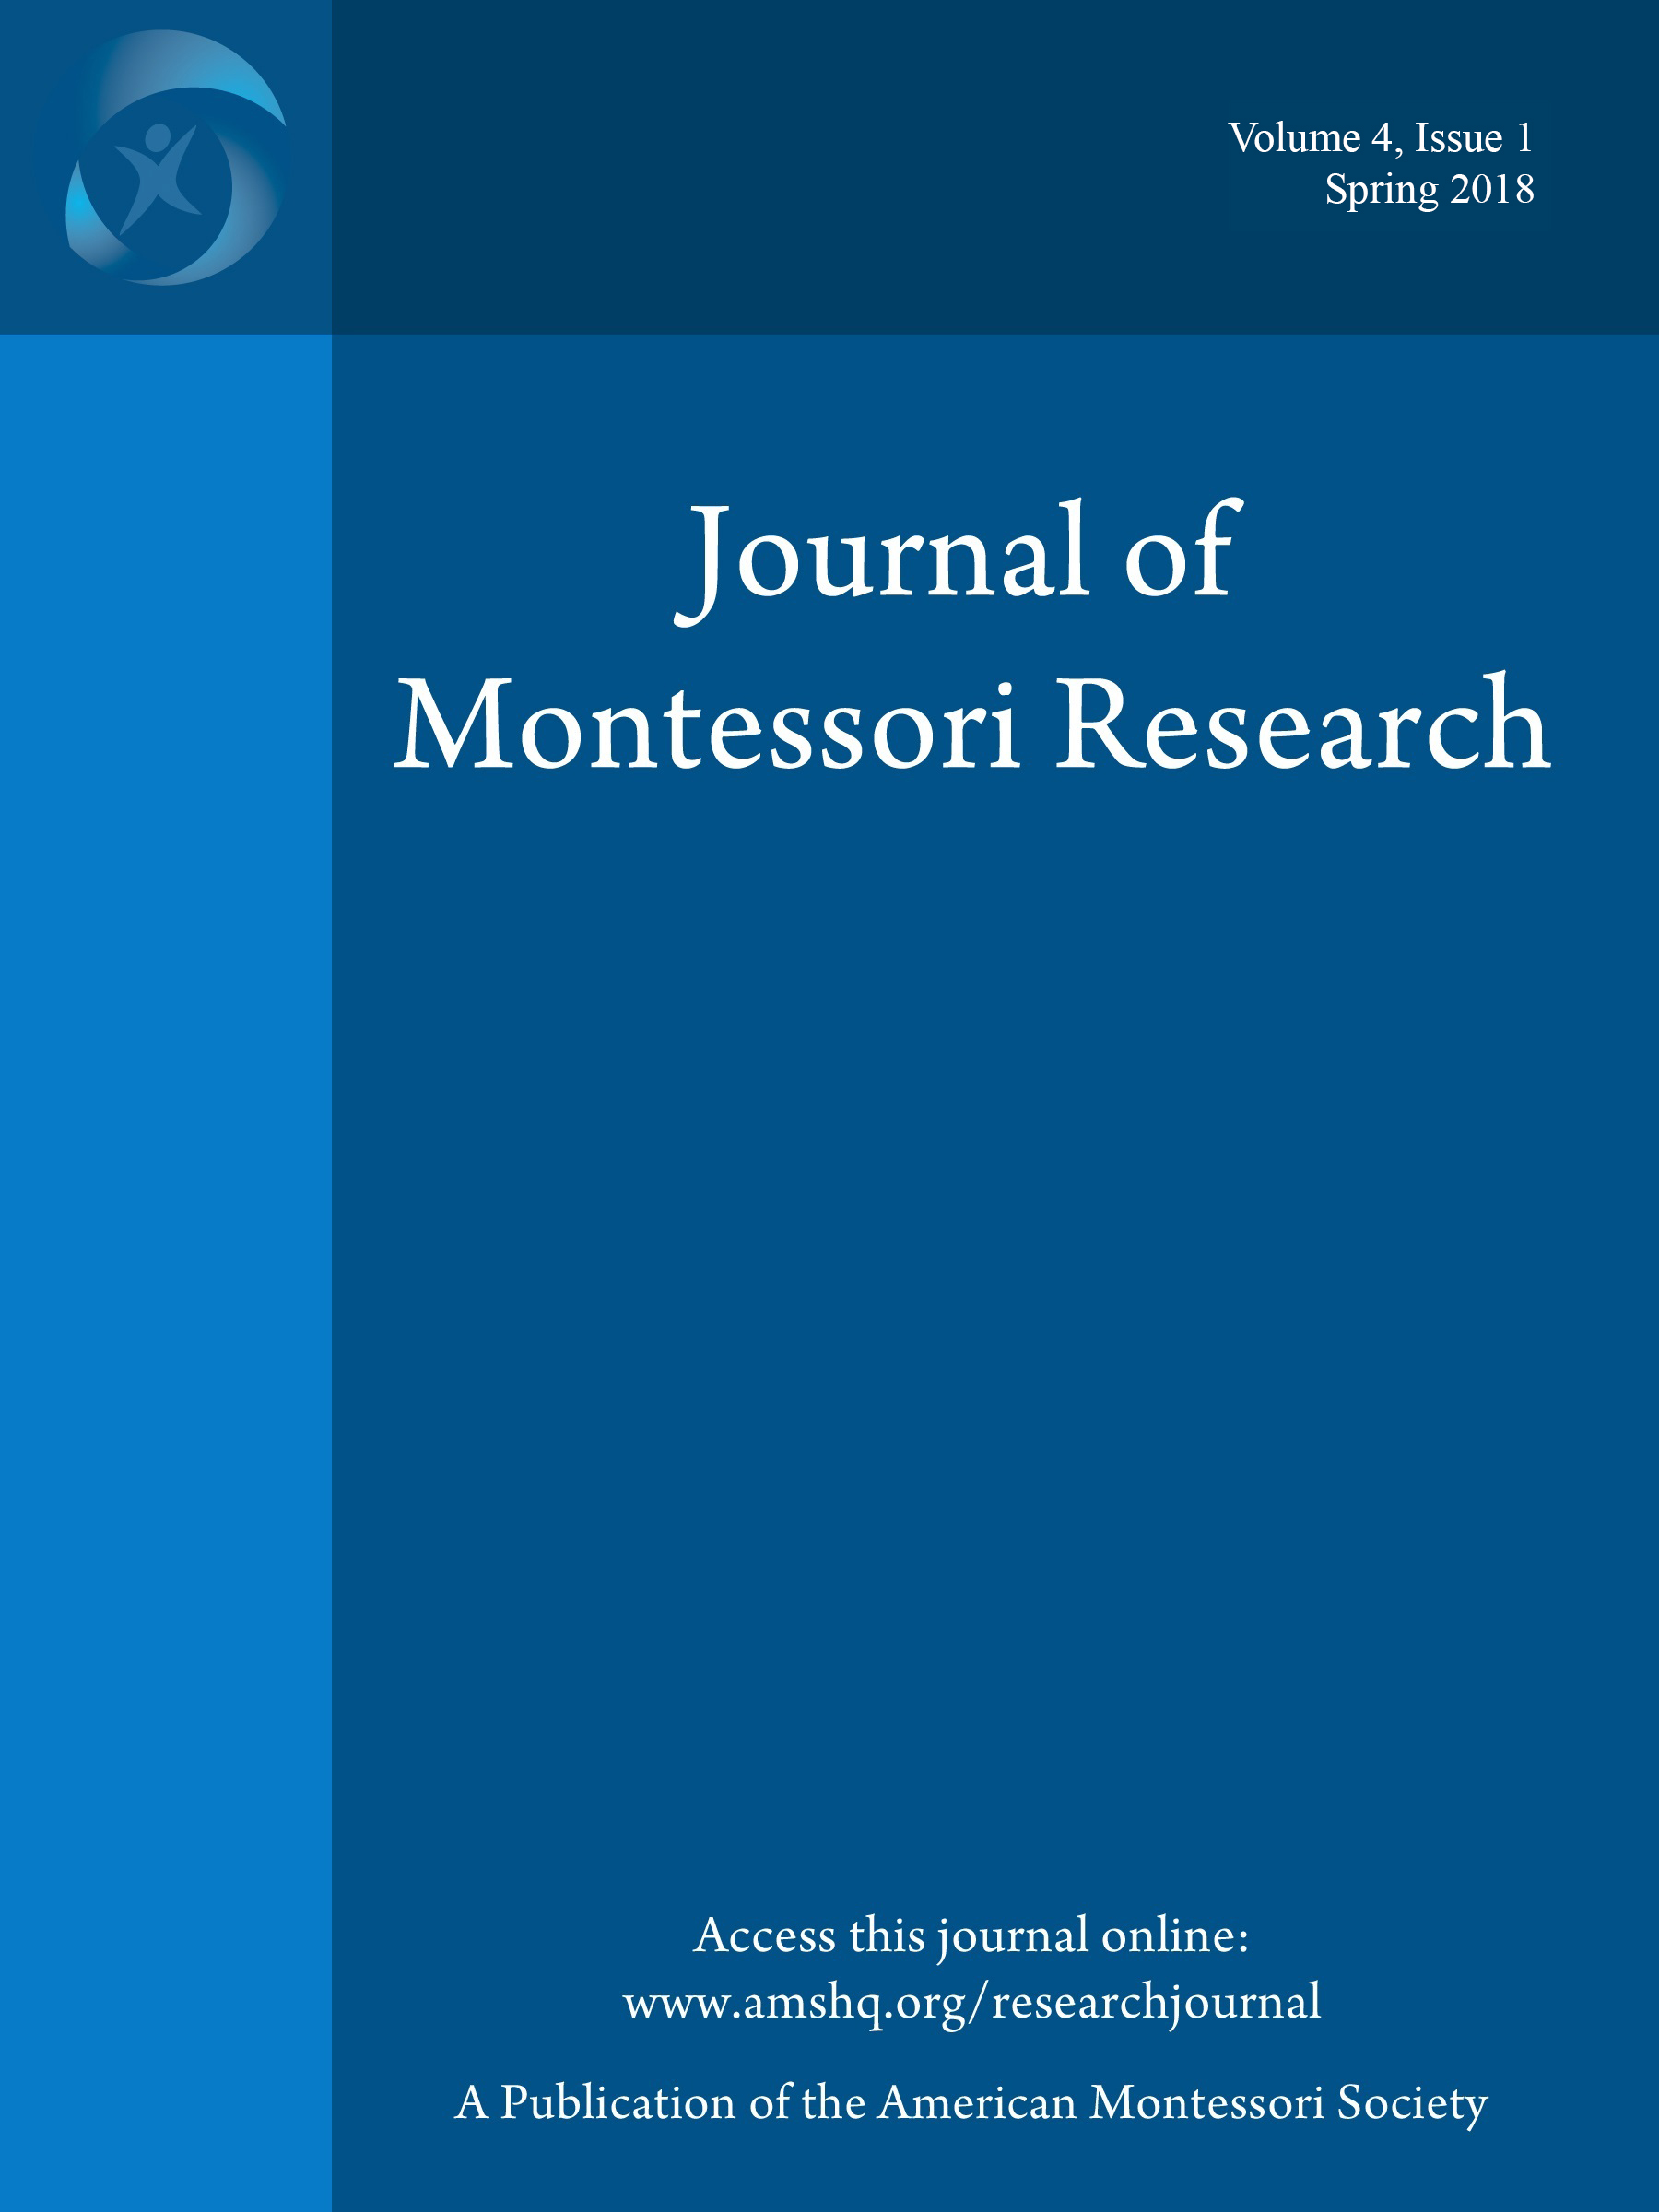 Journal of Montessori Research cover